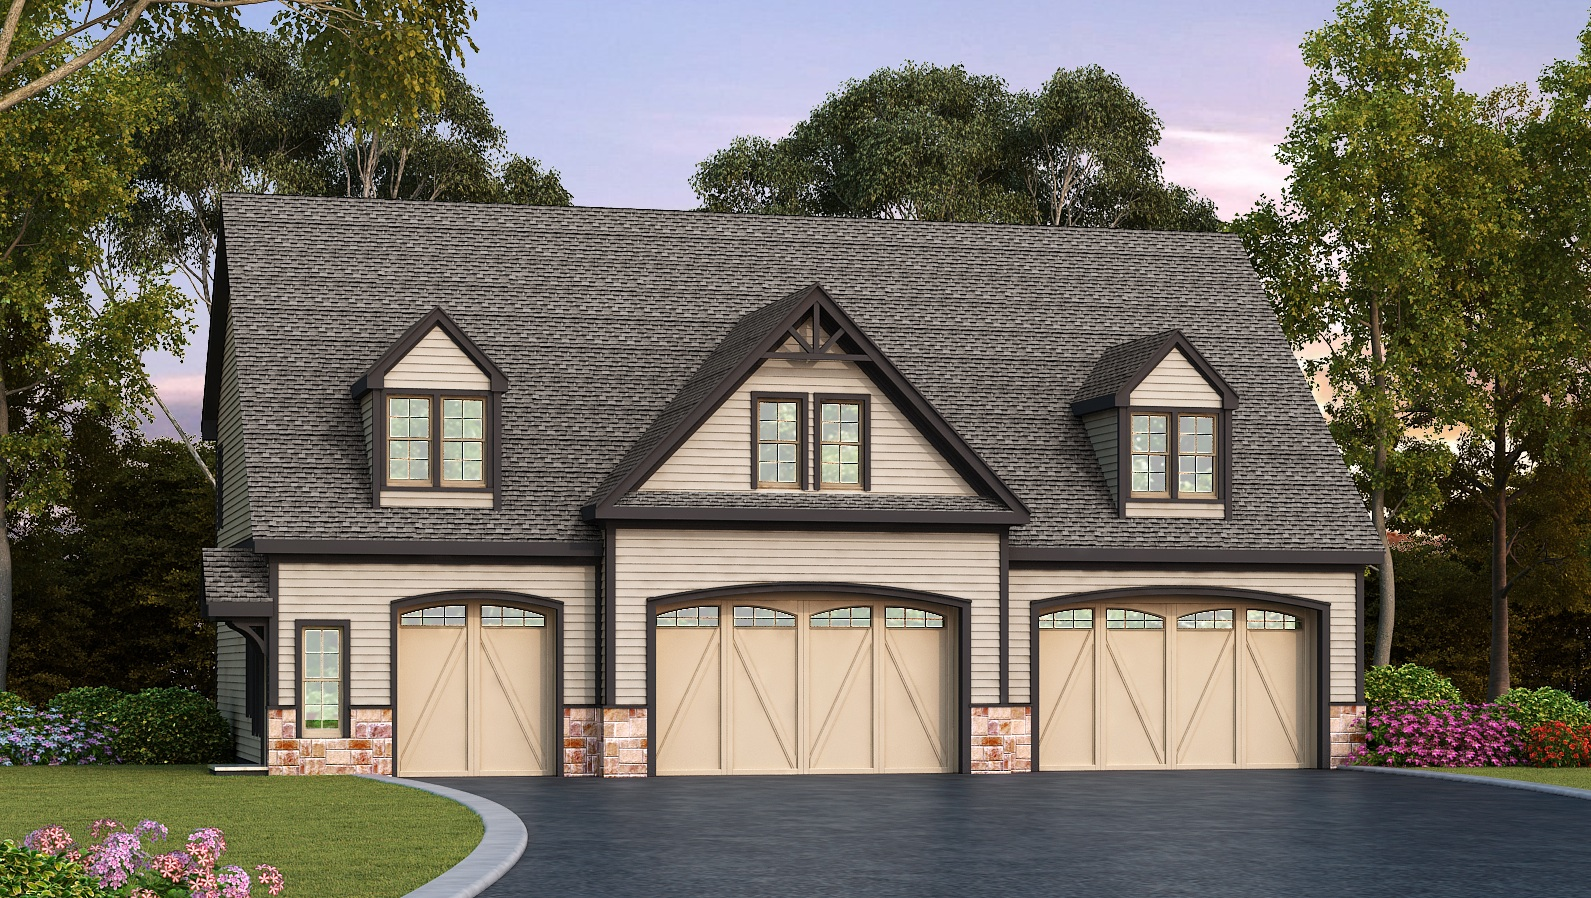 Residential 5 car garage plan 29870rl architectural for Five car garage